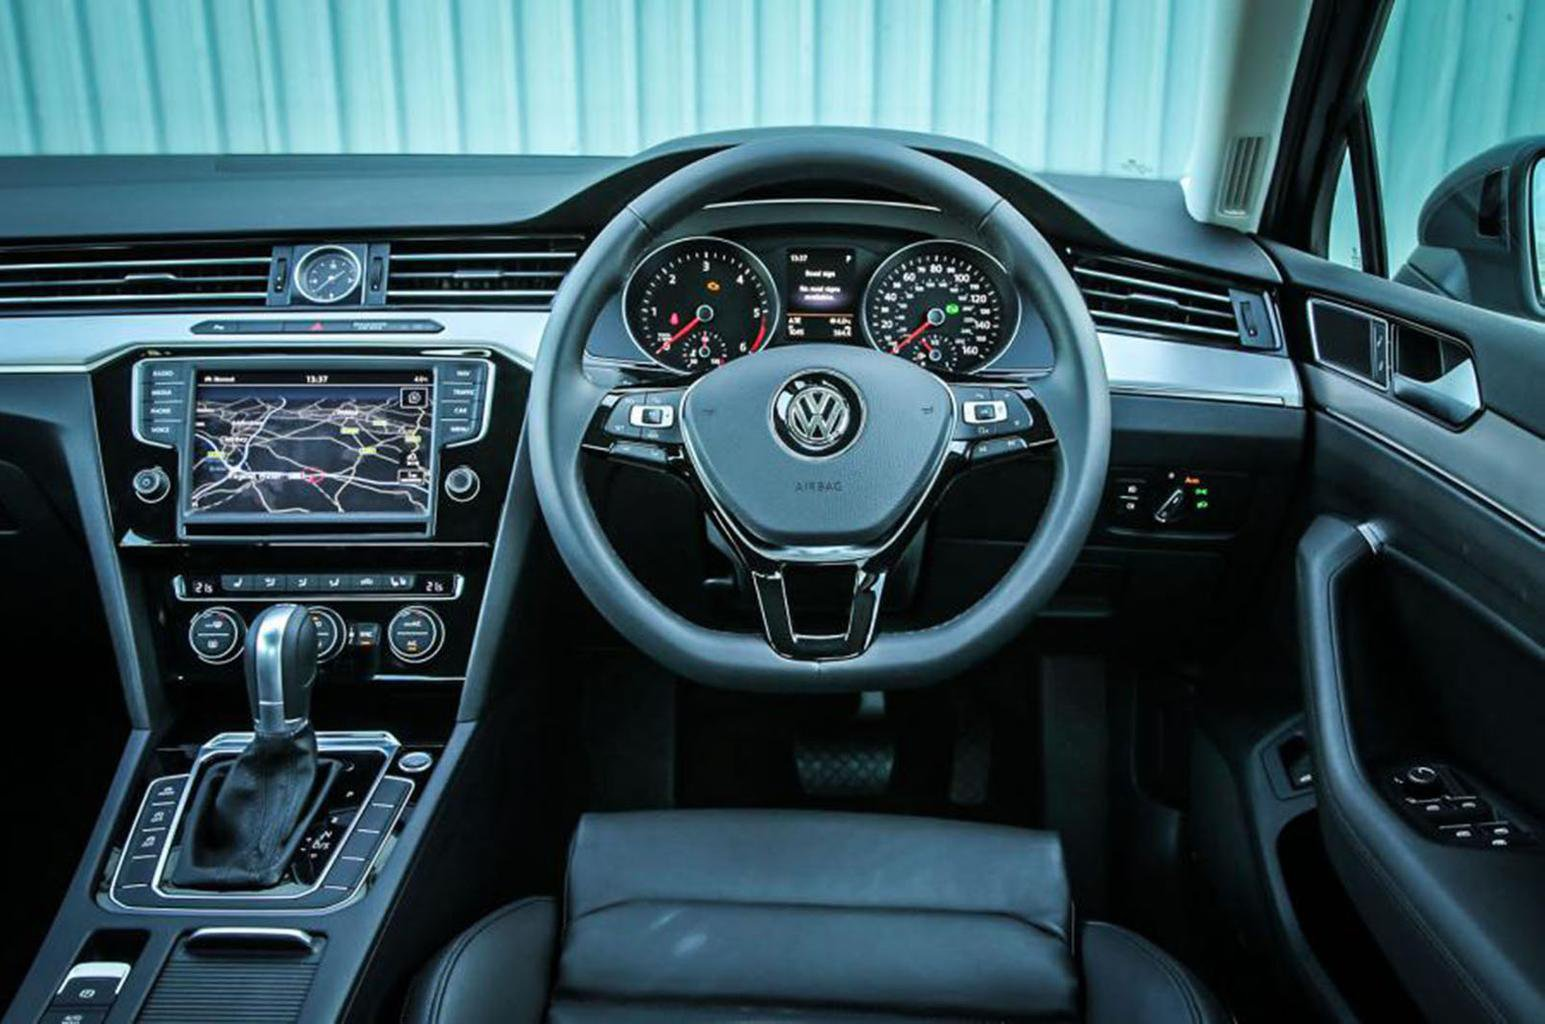 Volkswagen Passat Estate - interior